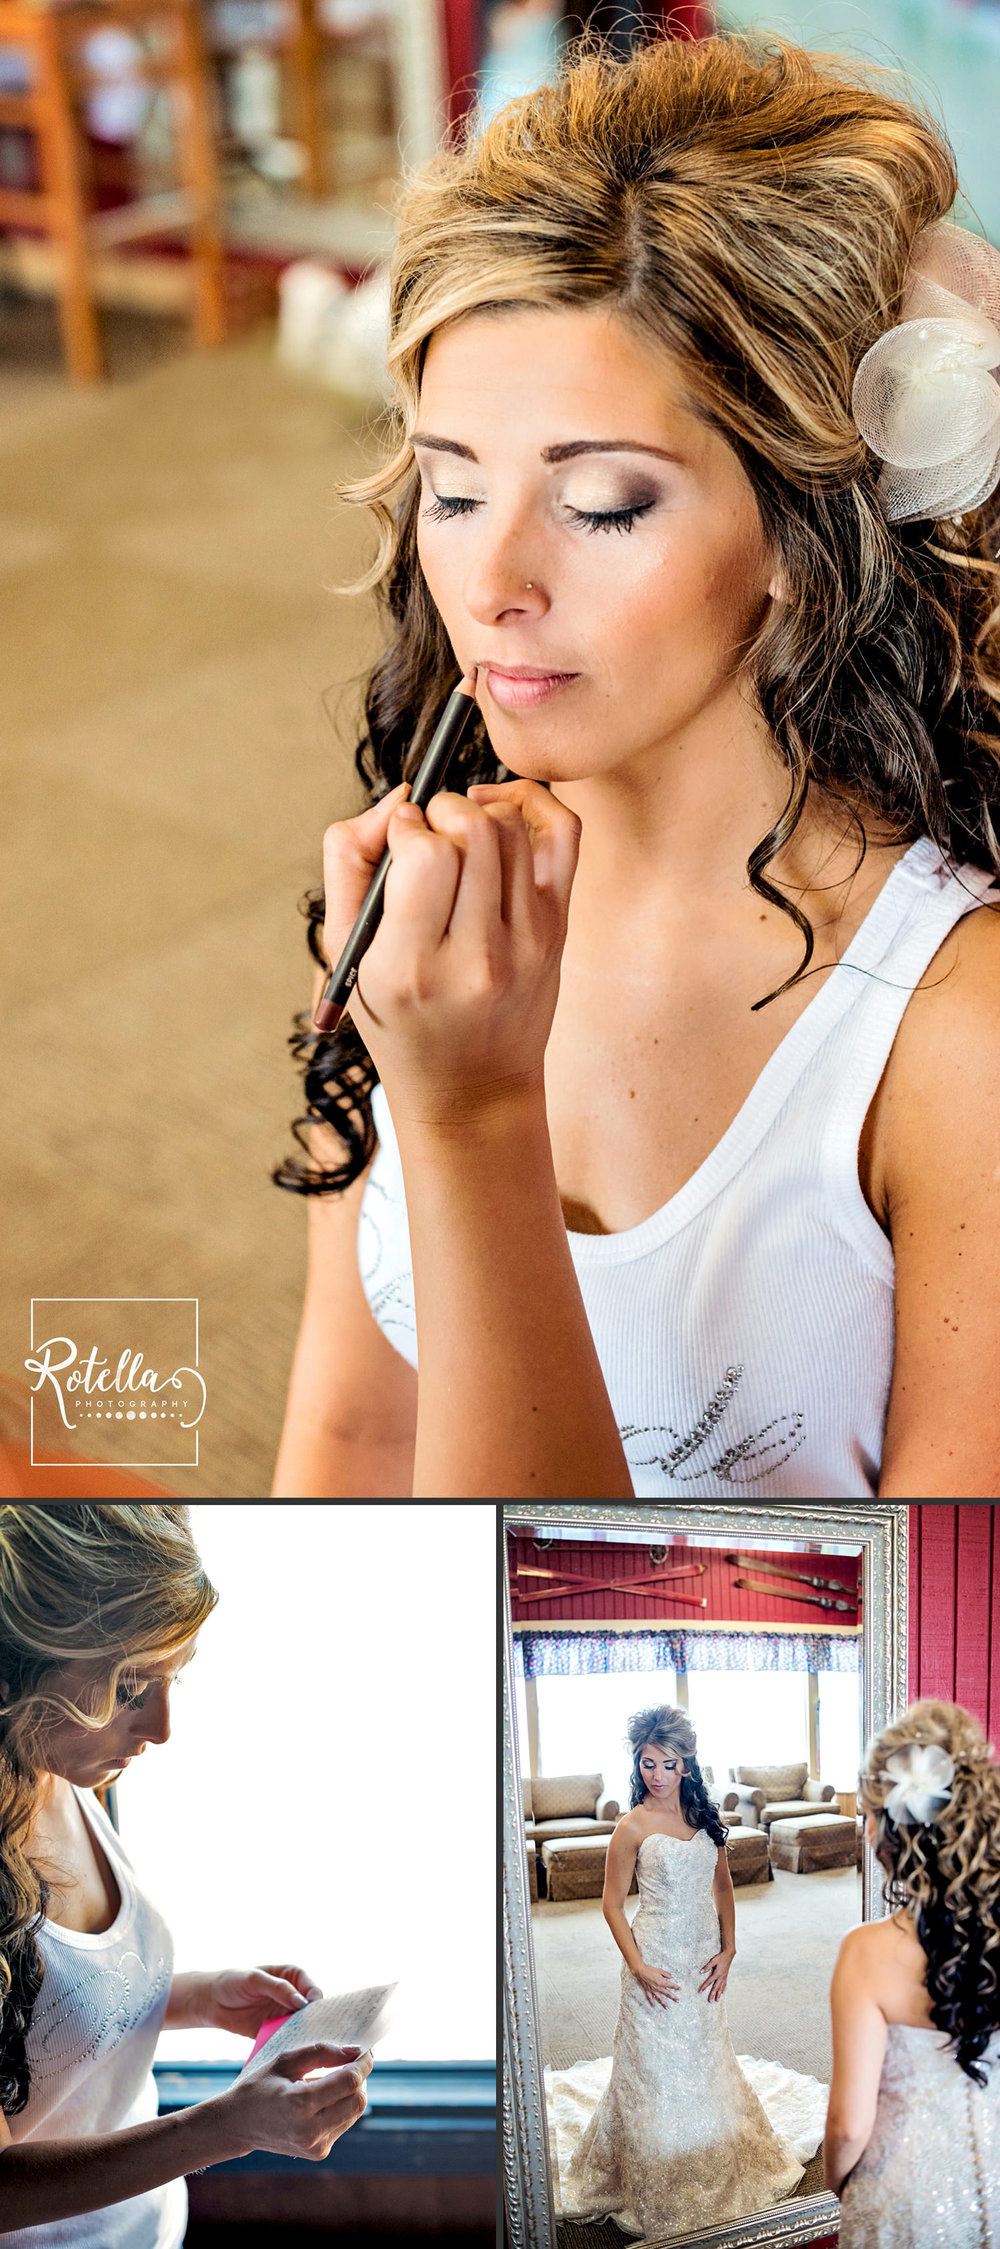 Bride putting on makeup by Rotella Photography